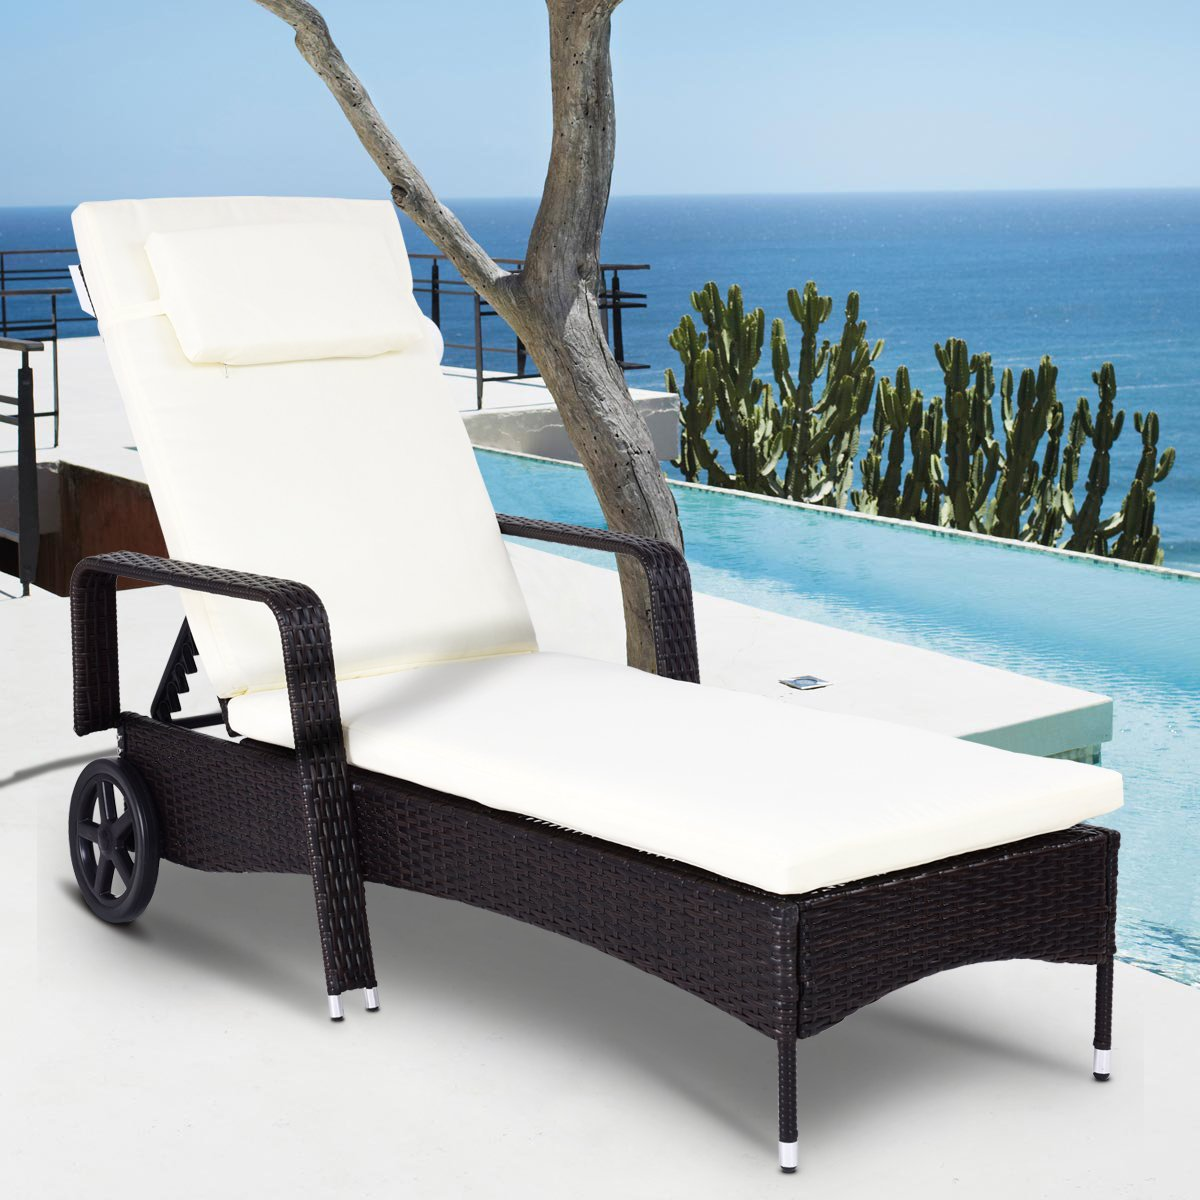 COSTWAY Rattan Sun Lounge Chair Bed Recliner Chaise Furniture W/Cushion Outdoor Garden